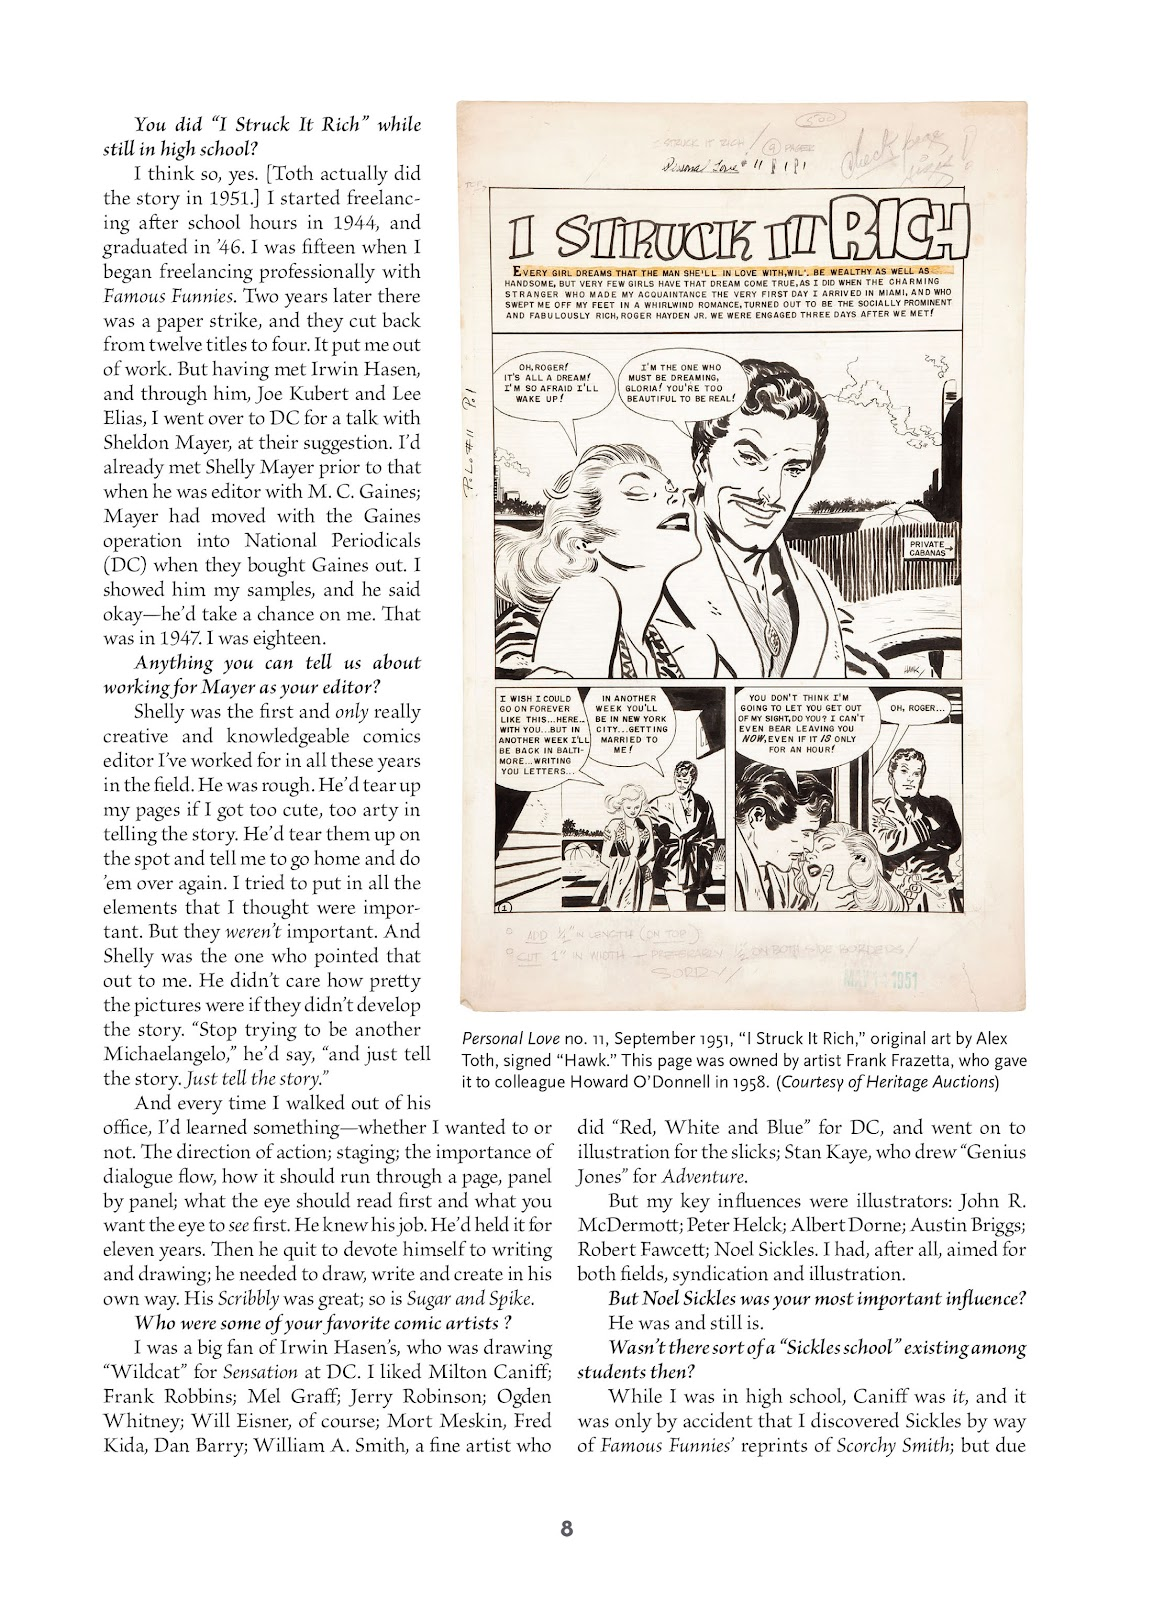 Read online Setting the Standard: Comics by Alex Toth 1952-1954 comic -  Issue # TPB (Part 1) - 7